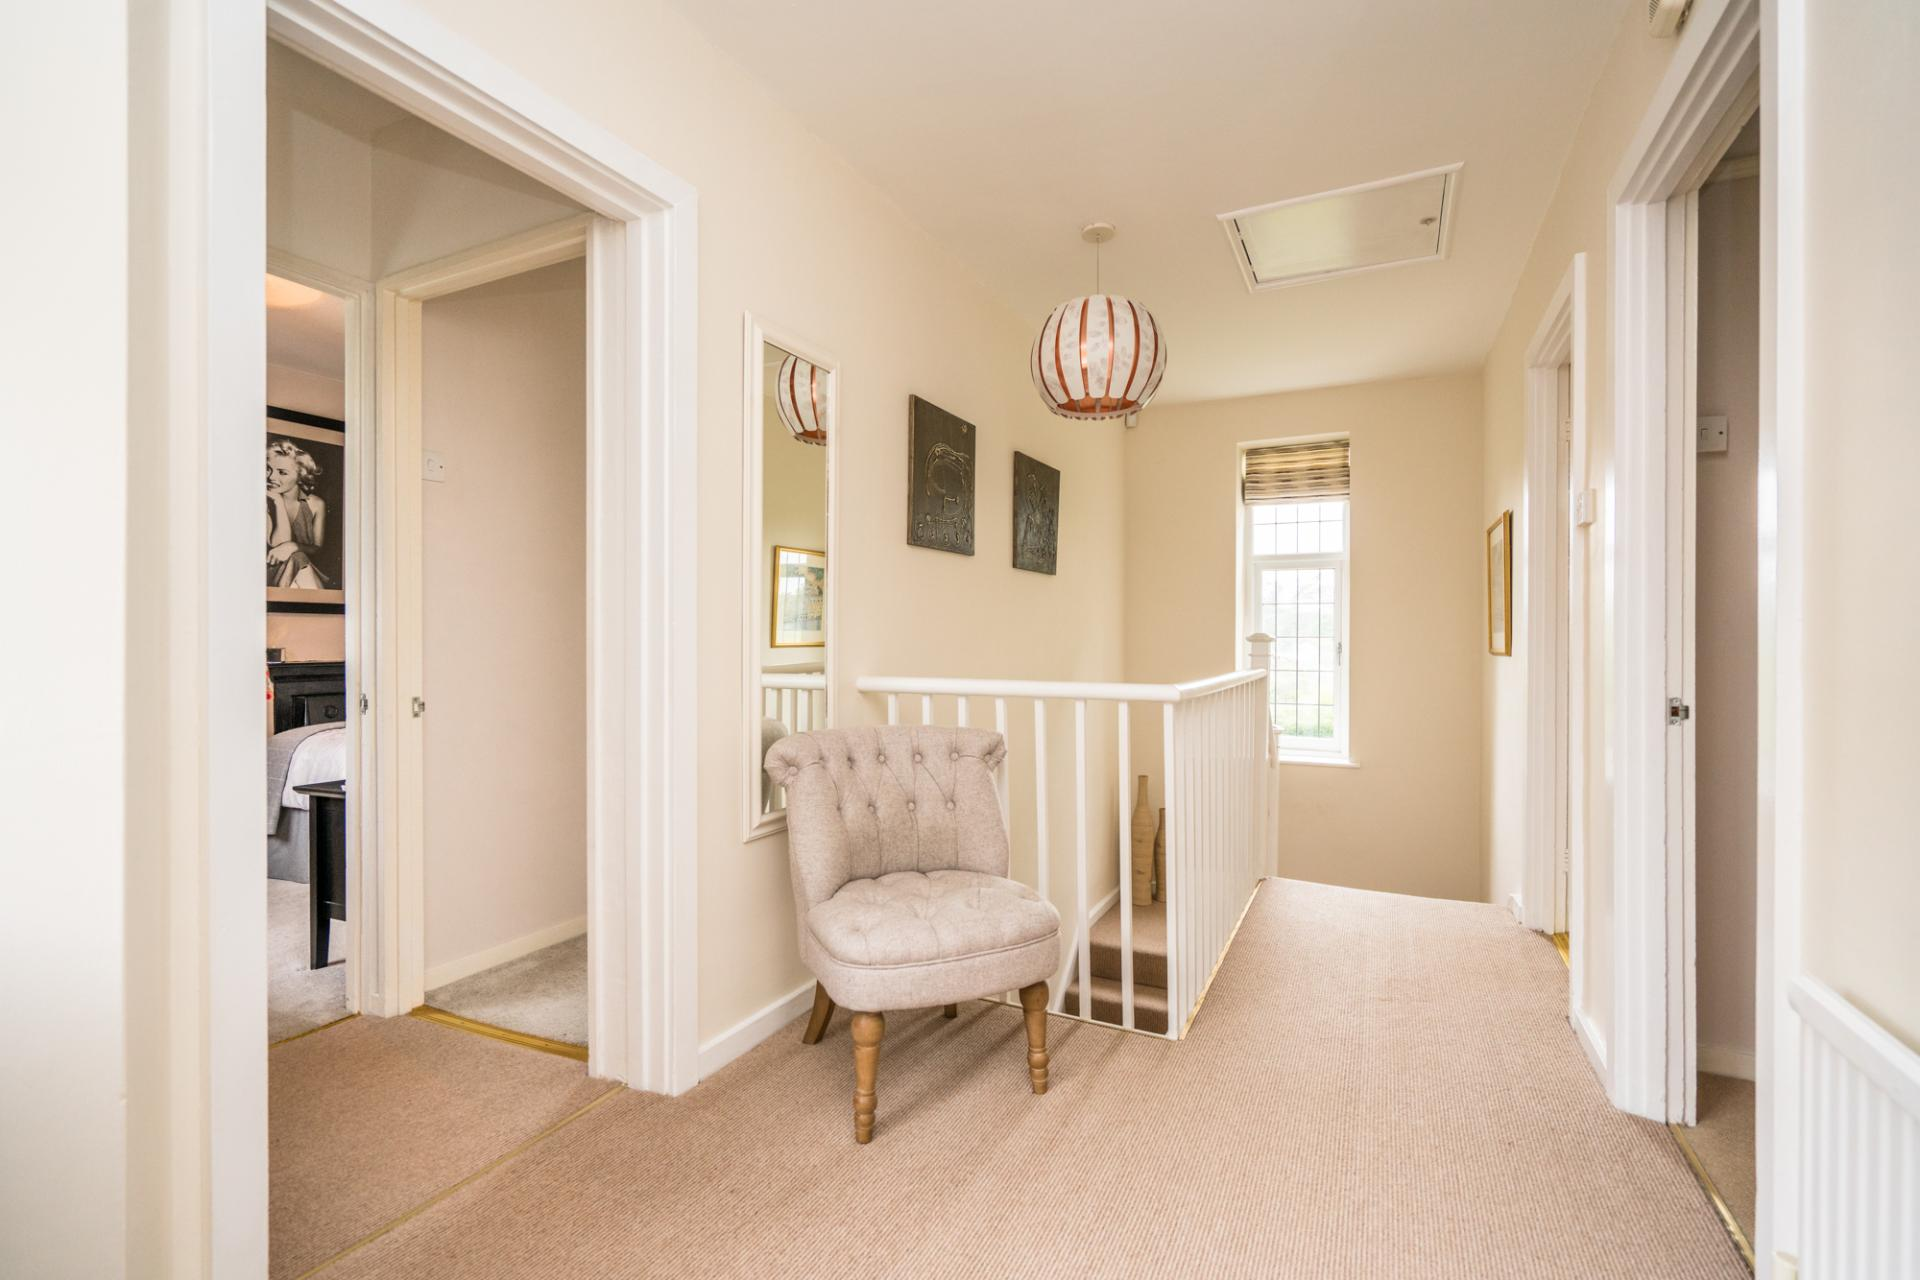 4 bedroom house for sale in luton